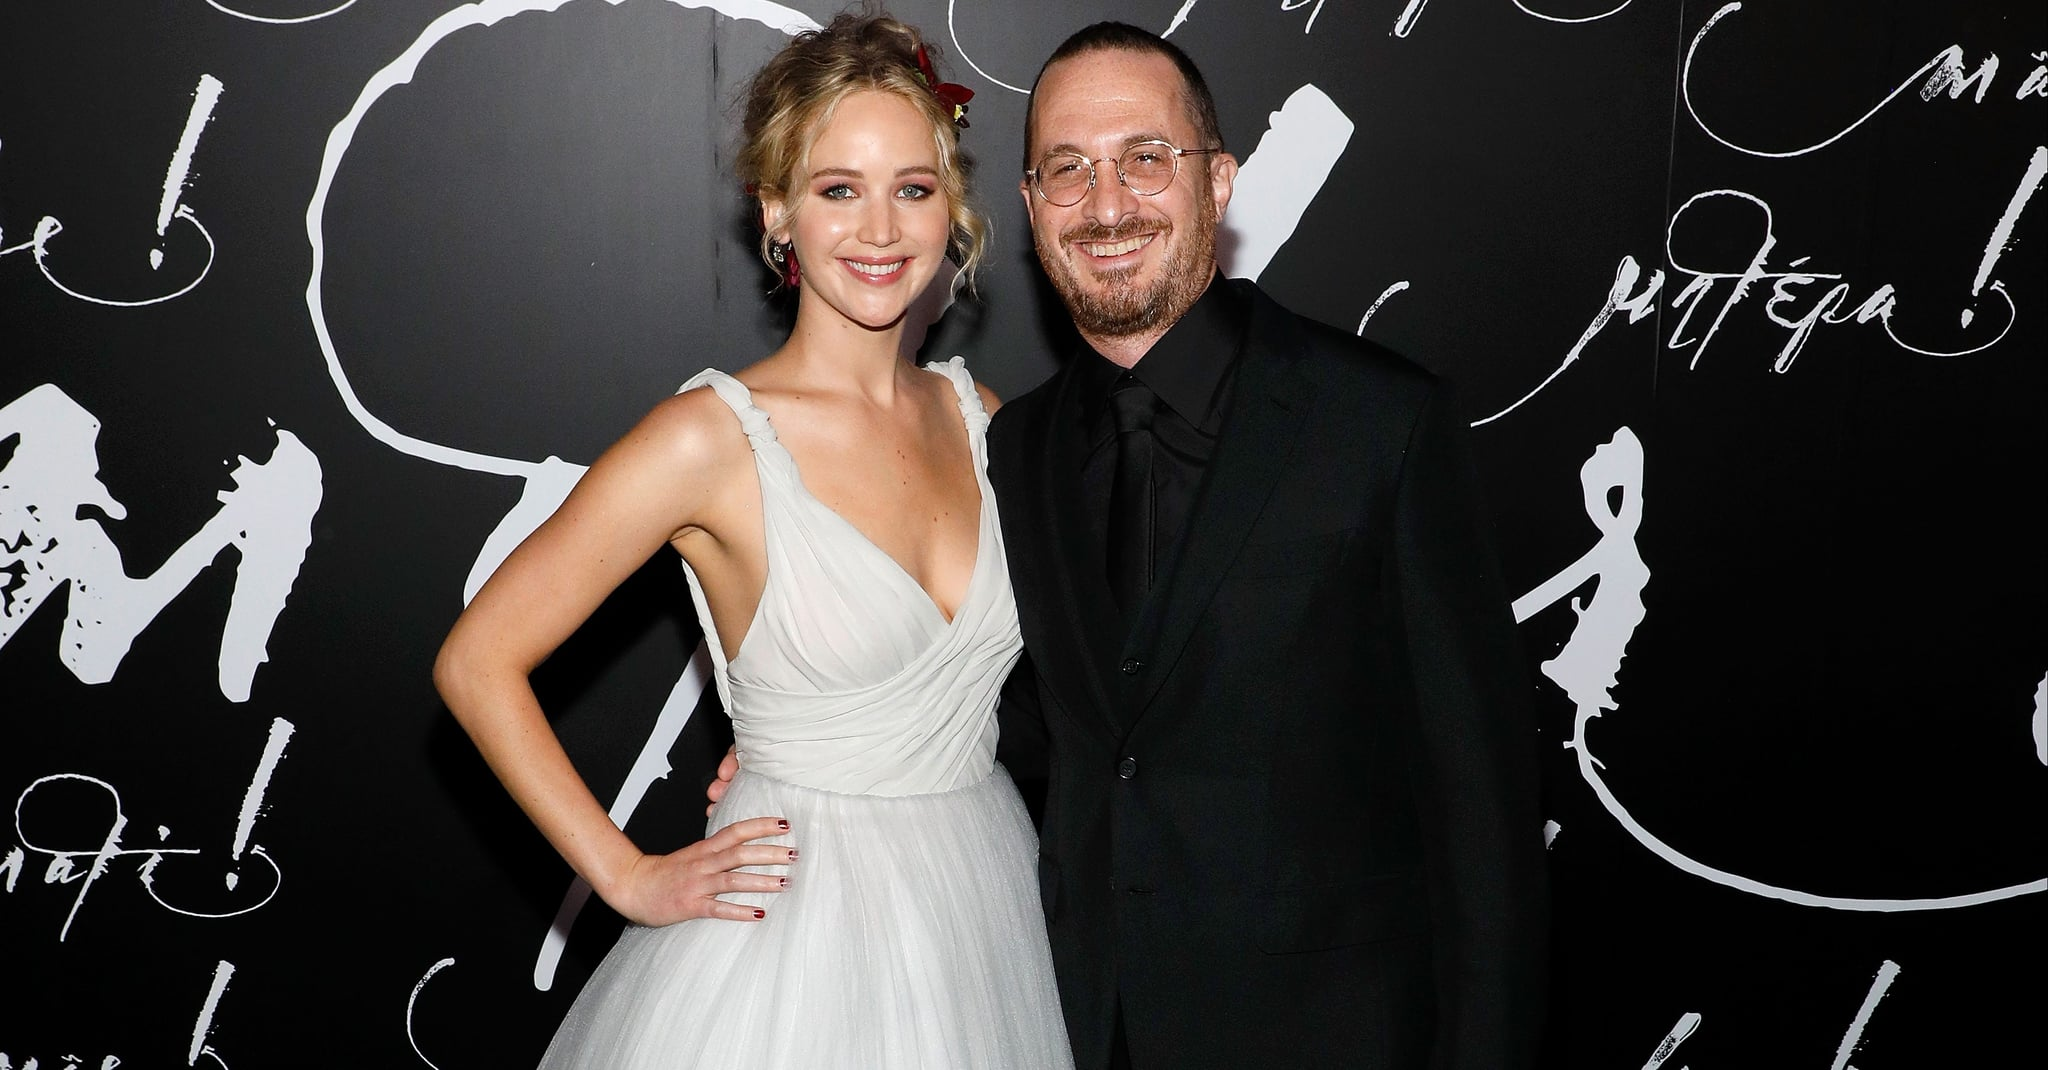 Jennifer Lawrence Is Hanging Out With Her Ex Darren Aronofsky!